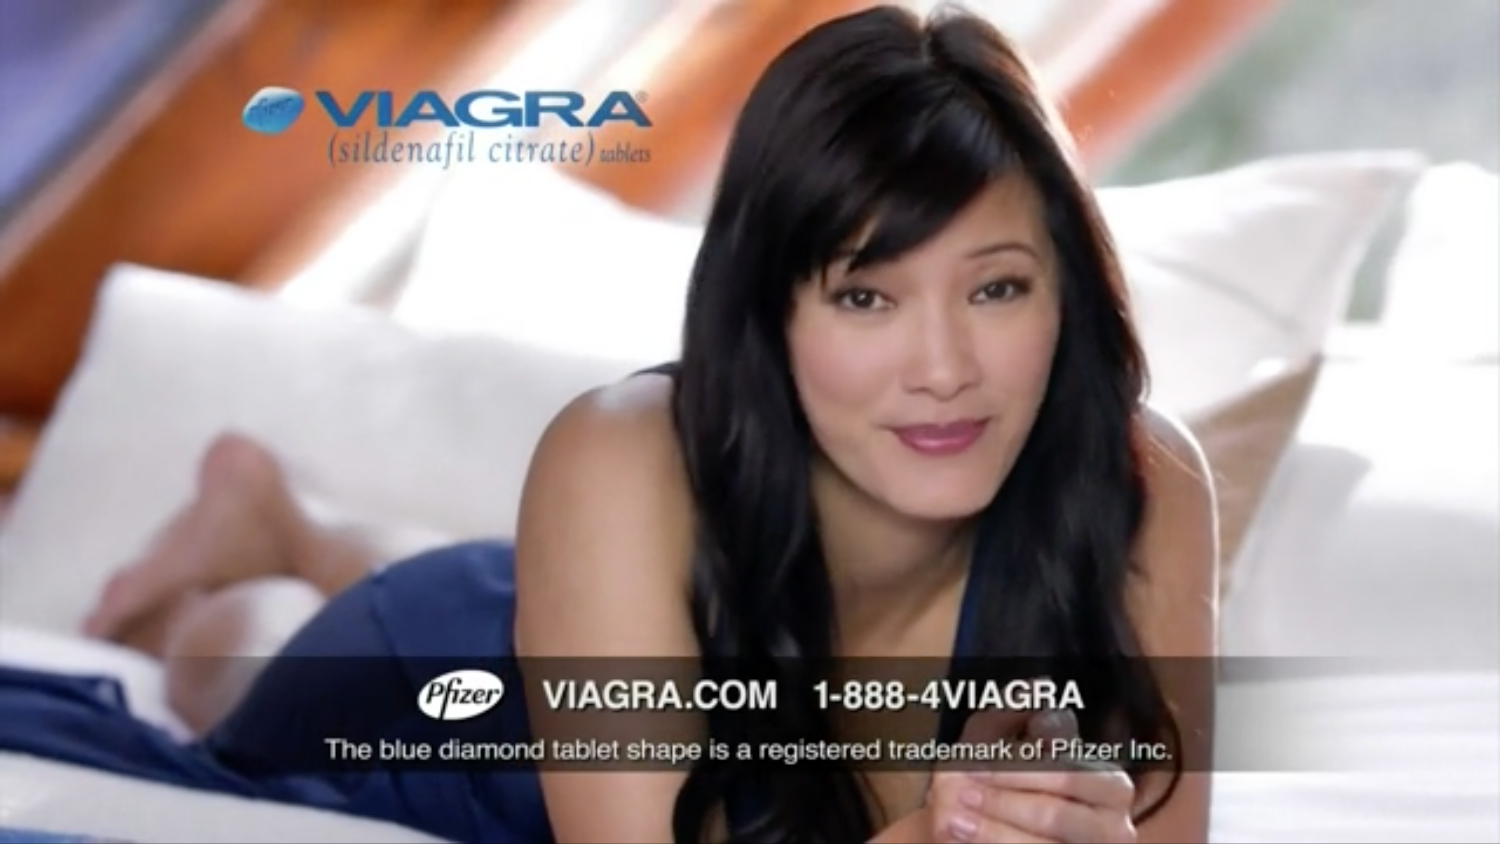 Viagra female models